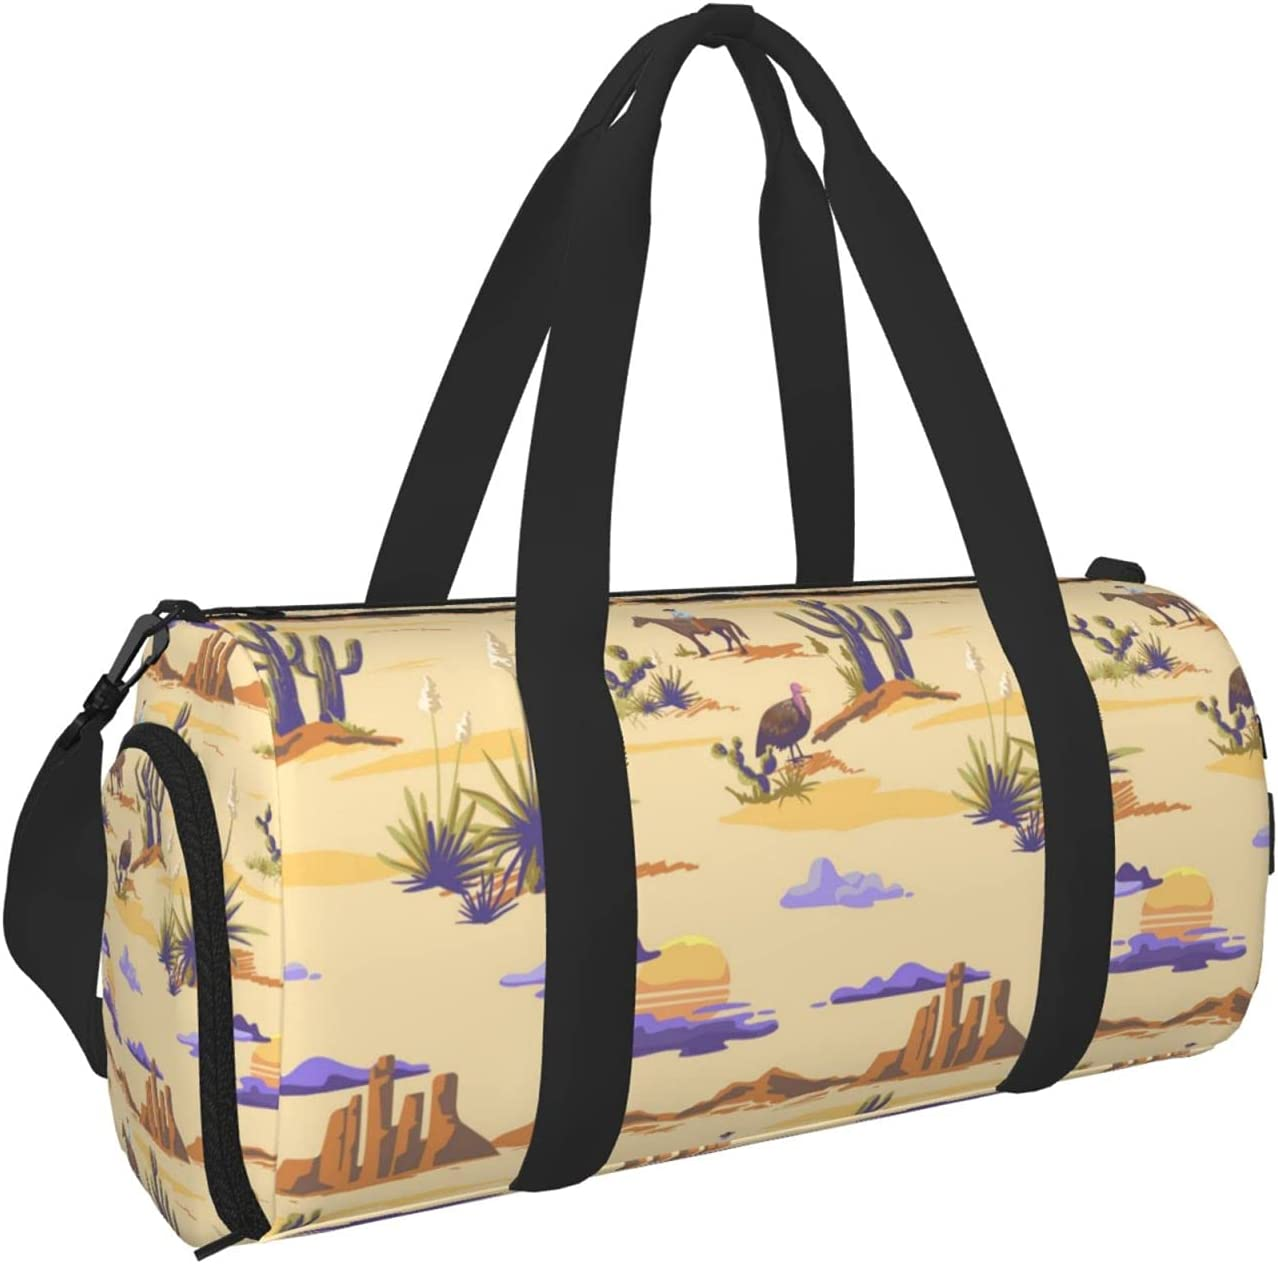 sold out Timeergy Cactuse Mountains Cowboy Sunset Safety and trust Gym B Travel Bag Duffel